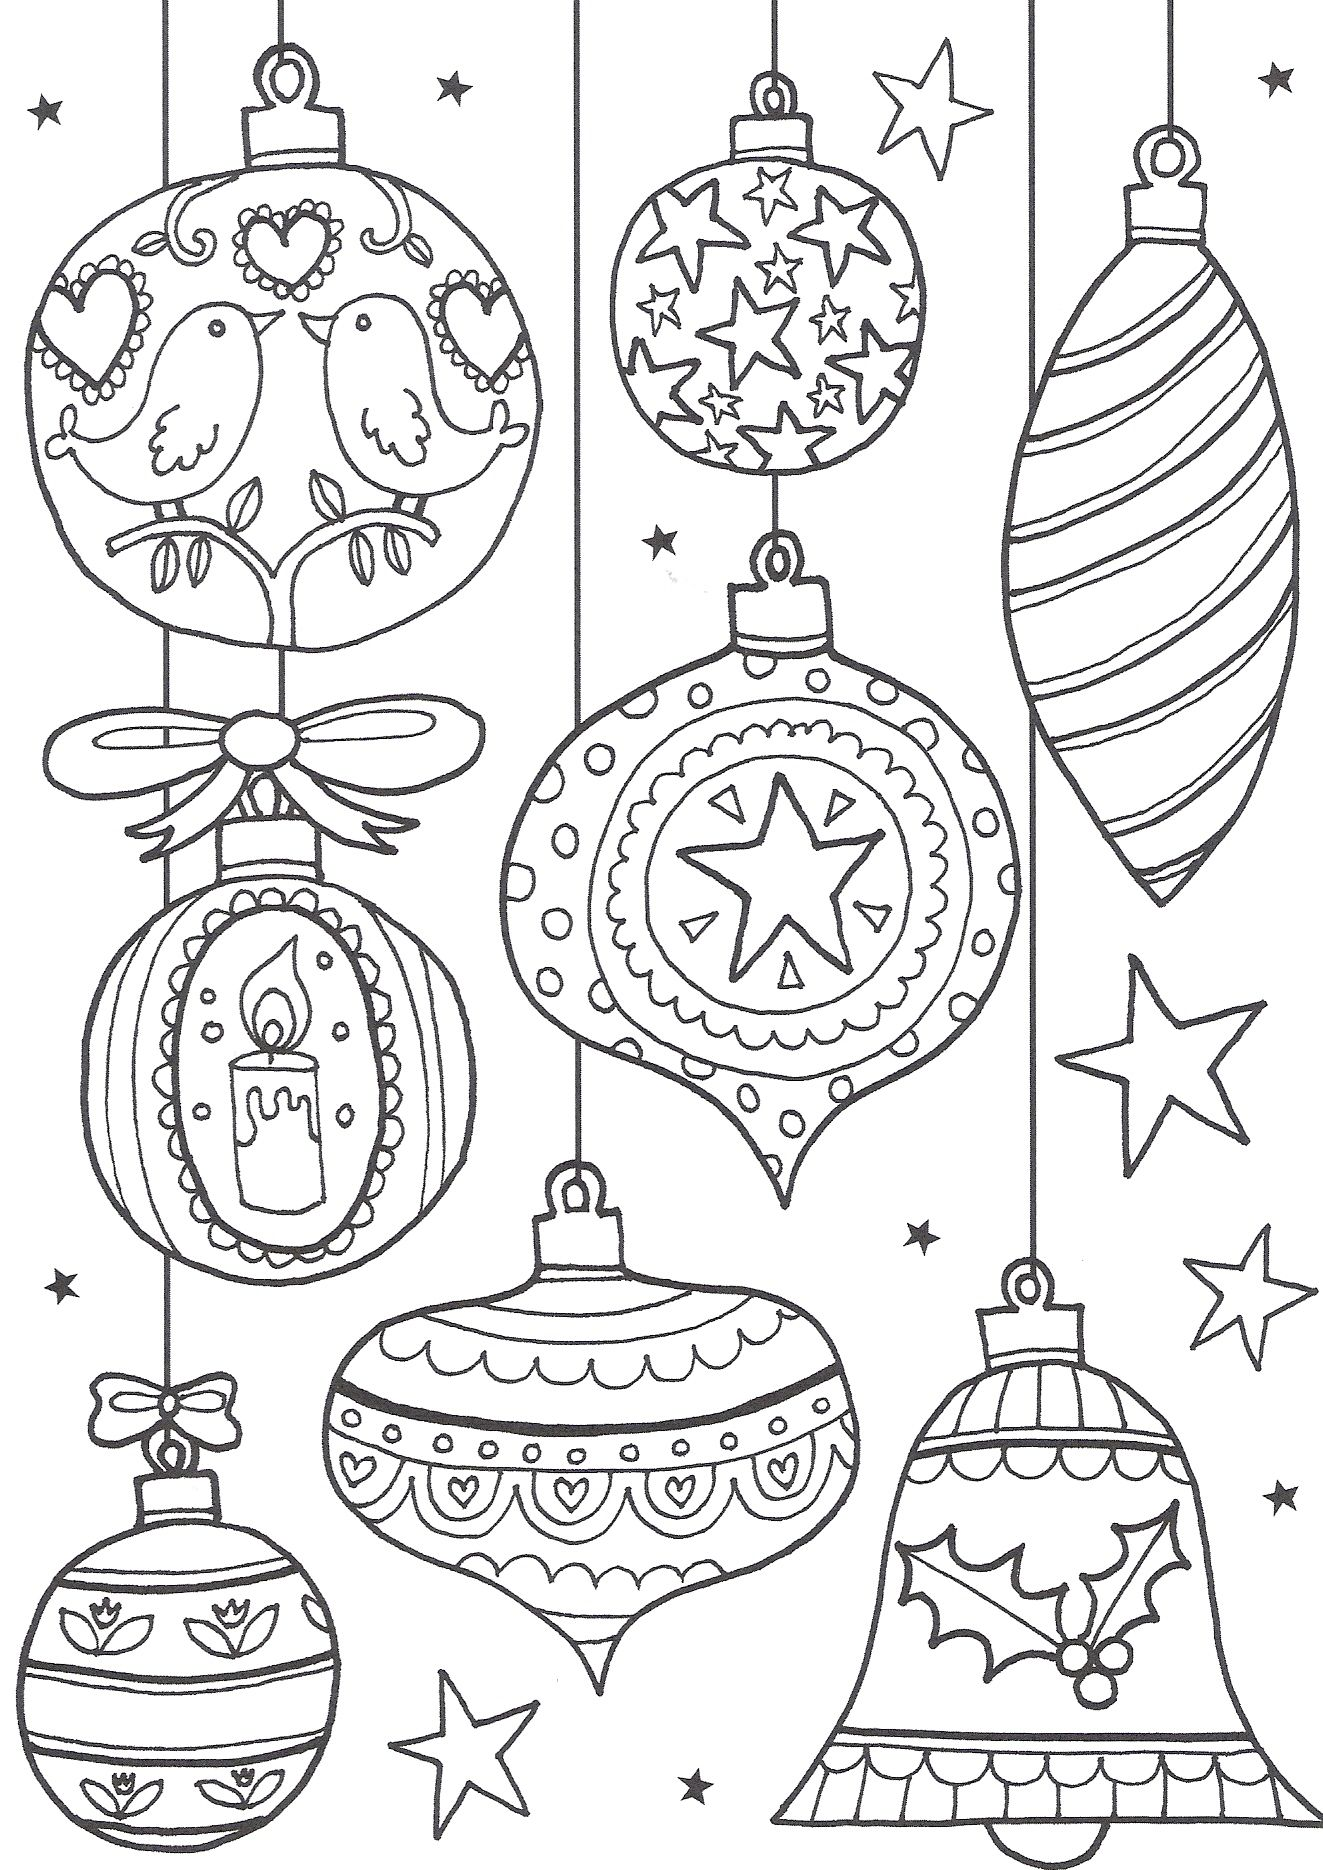 Christmas Coloring Templates With Free Colouring Pages For Adults The Ultimate Roundup